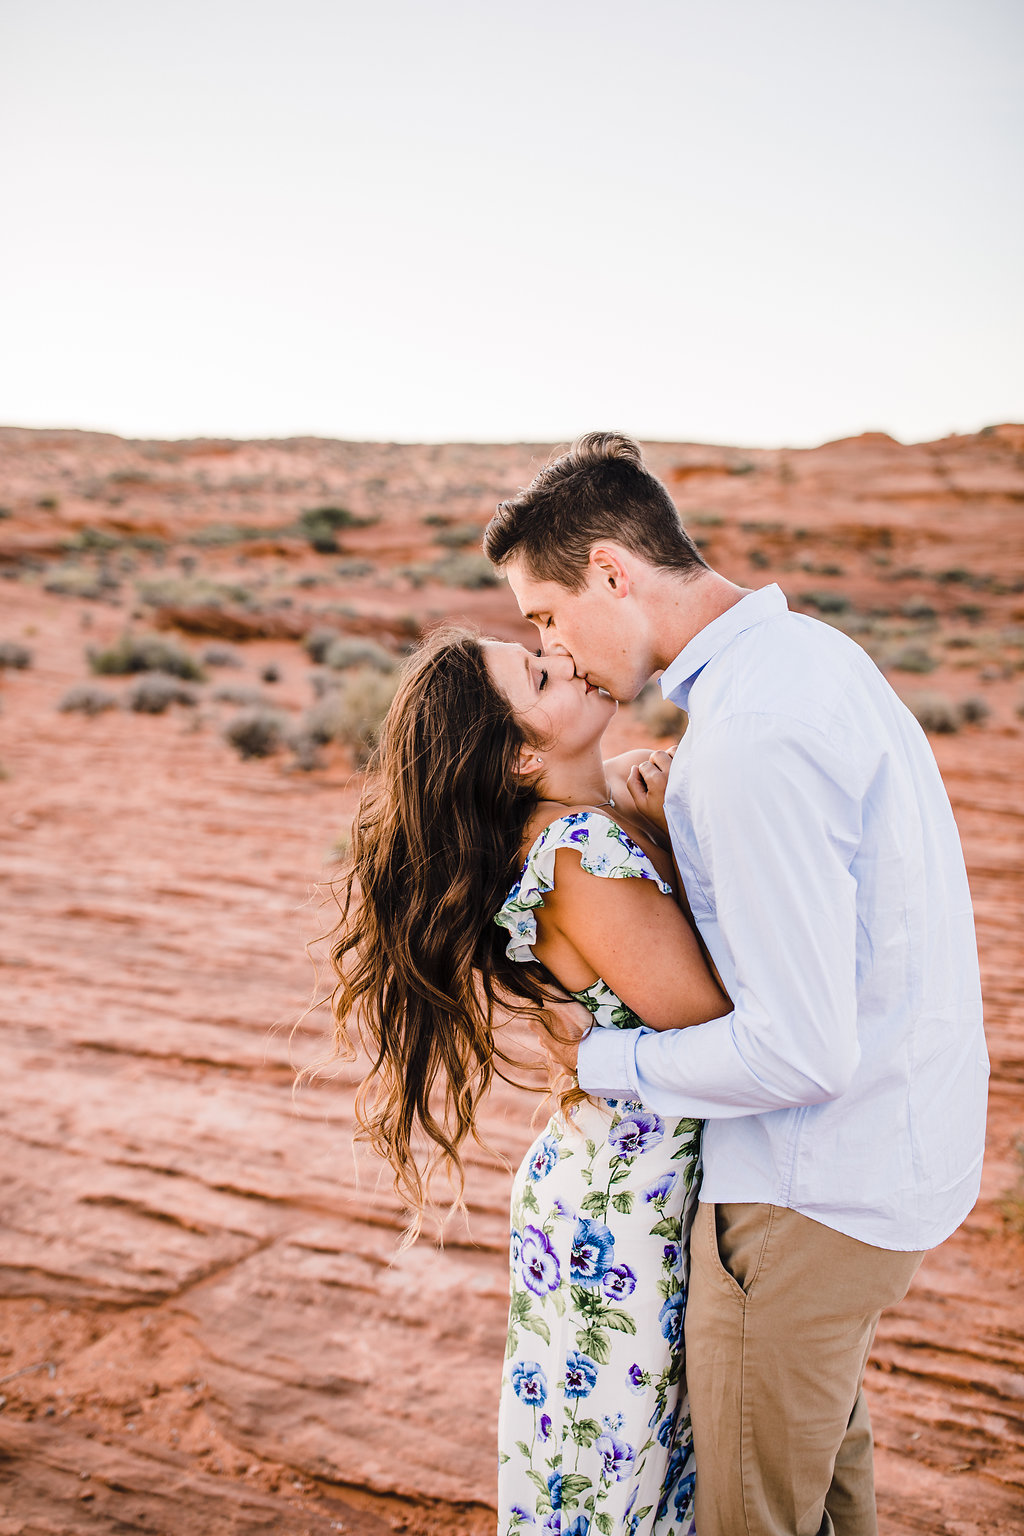 page arizona professional wedding photographer kissing romantic desert floral dress windy hair